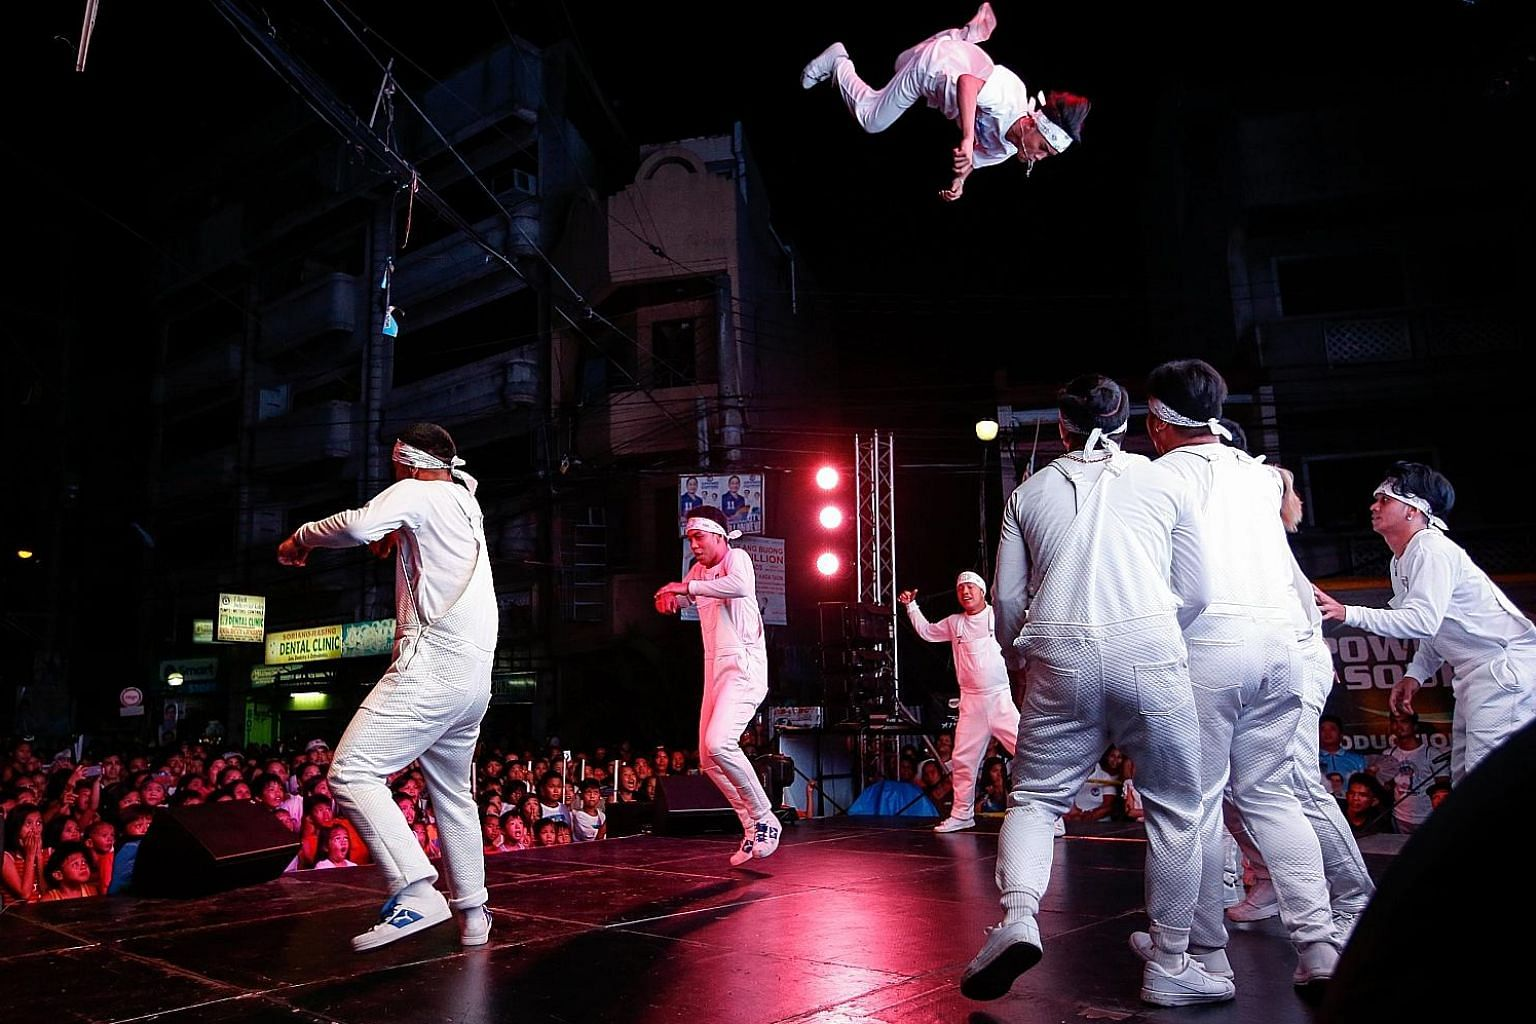 Dancers at a campaign event in Manila for the Philippines' midterm elections. On Monday, more than 60 million Filipinos will head to the polls to elect 12 senators, 297 district representatives and some 18,000 provincial, city and town officials.